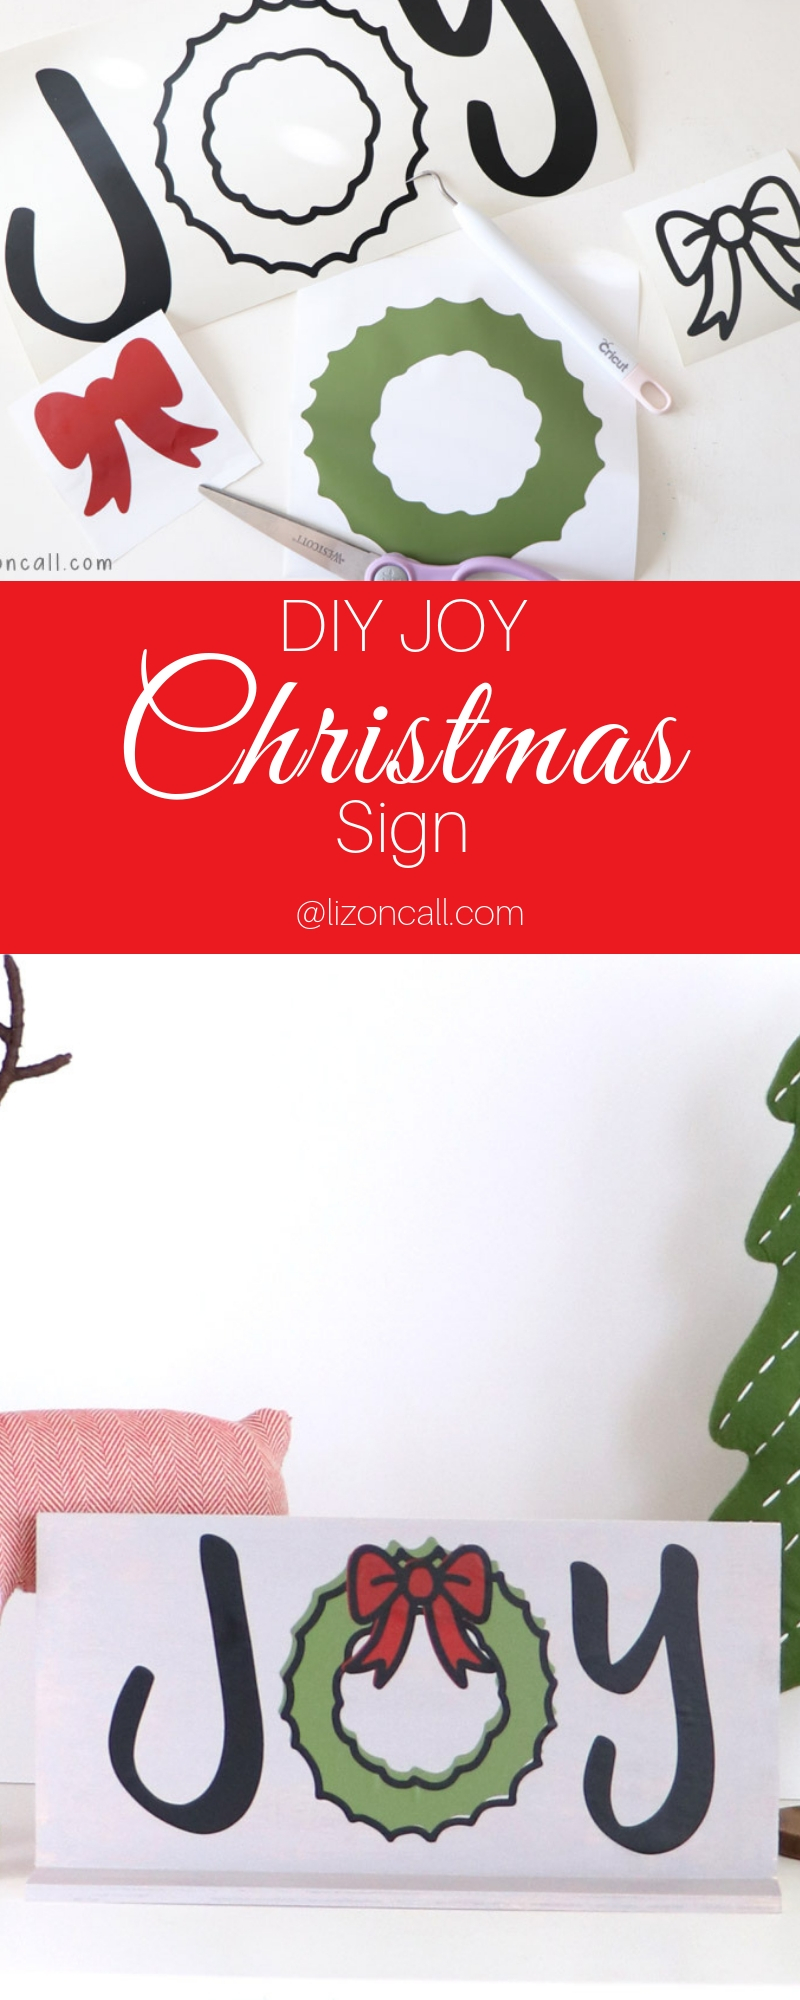 This DIY Christmas sign would make a great last minute Christmas gift or Christmas decoration for your home. #christmassign #joy